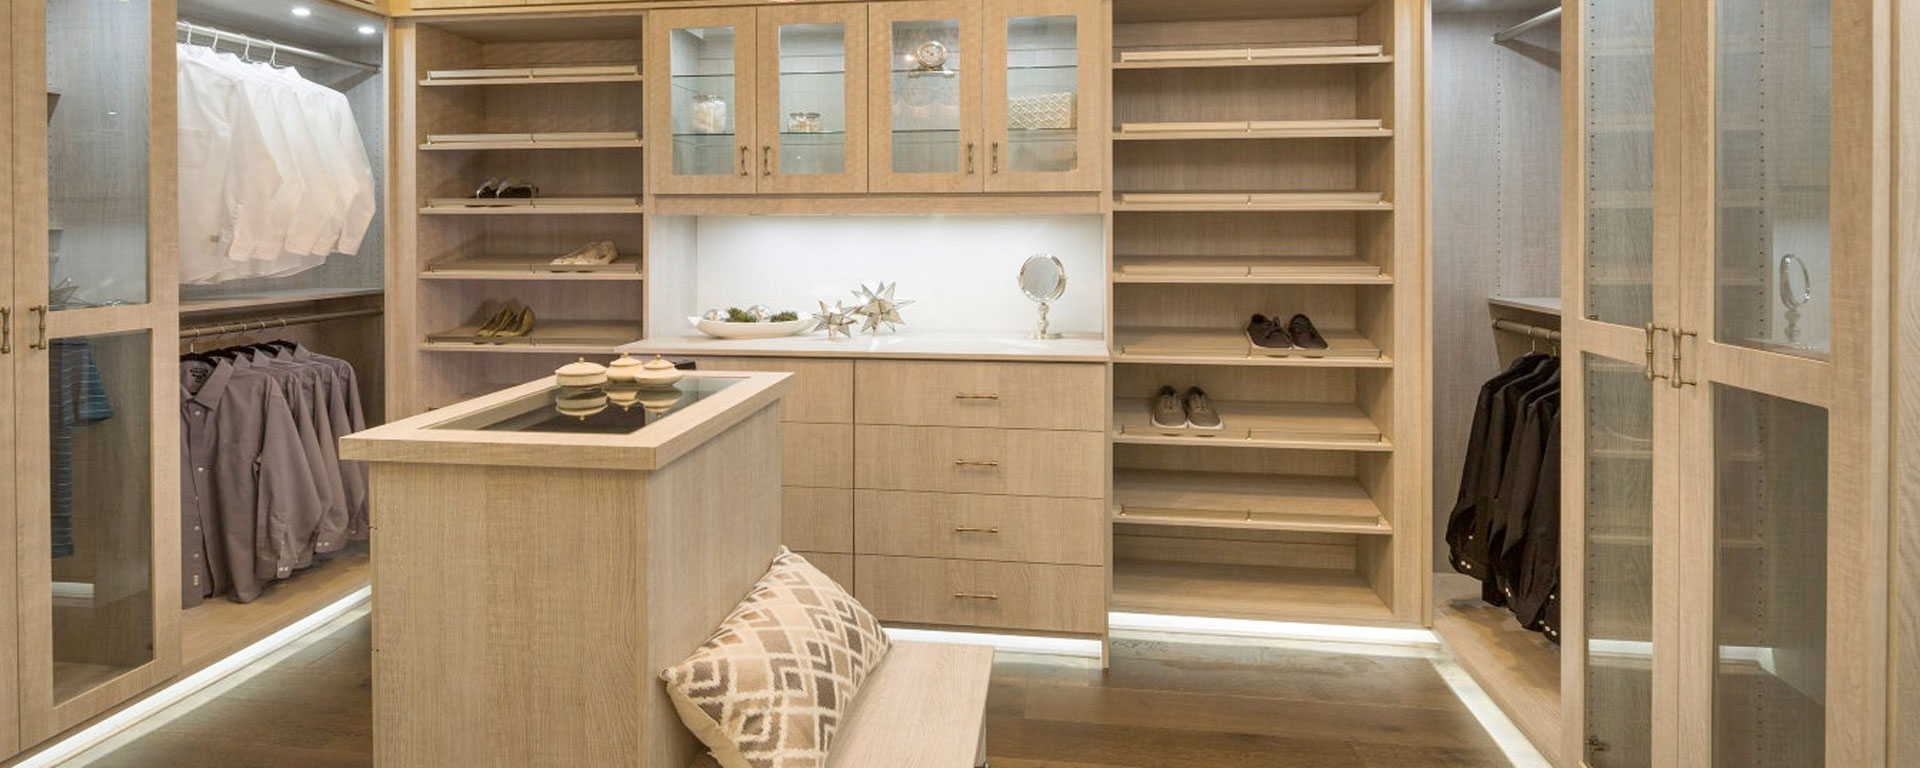 ADISH-Kish-Kitchen-Doors-Closet-Products